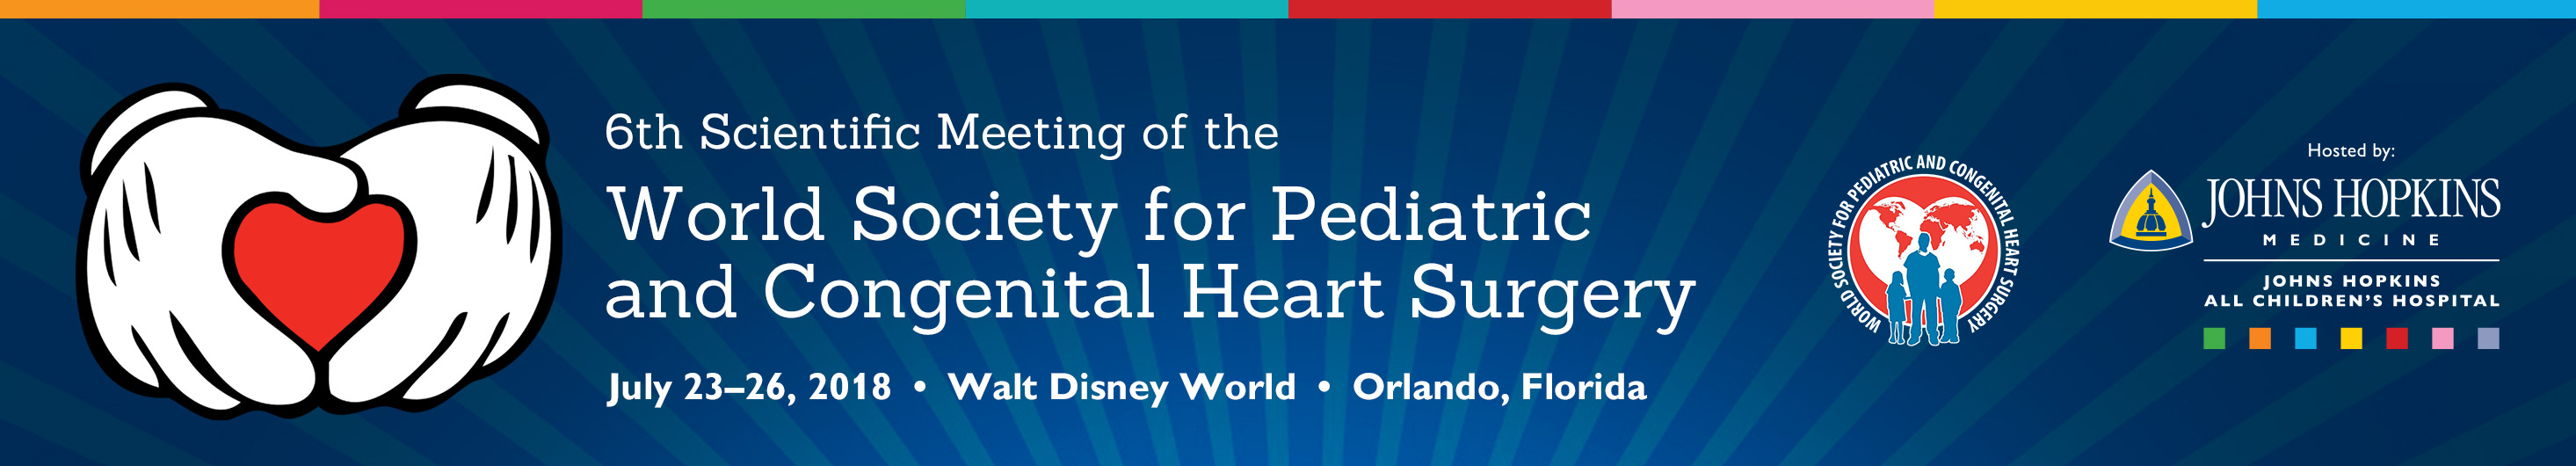 World Society for Pediatric Cardiology and Heart Surgery